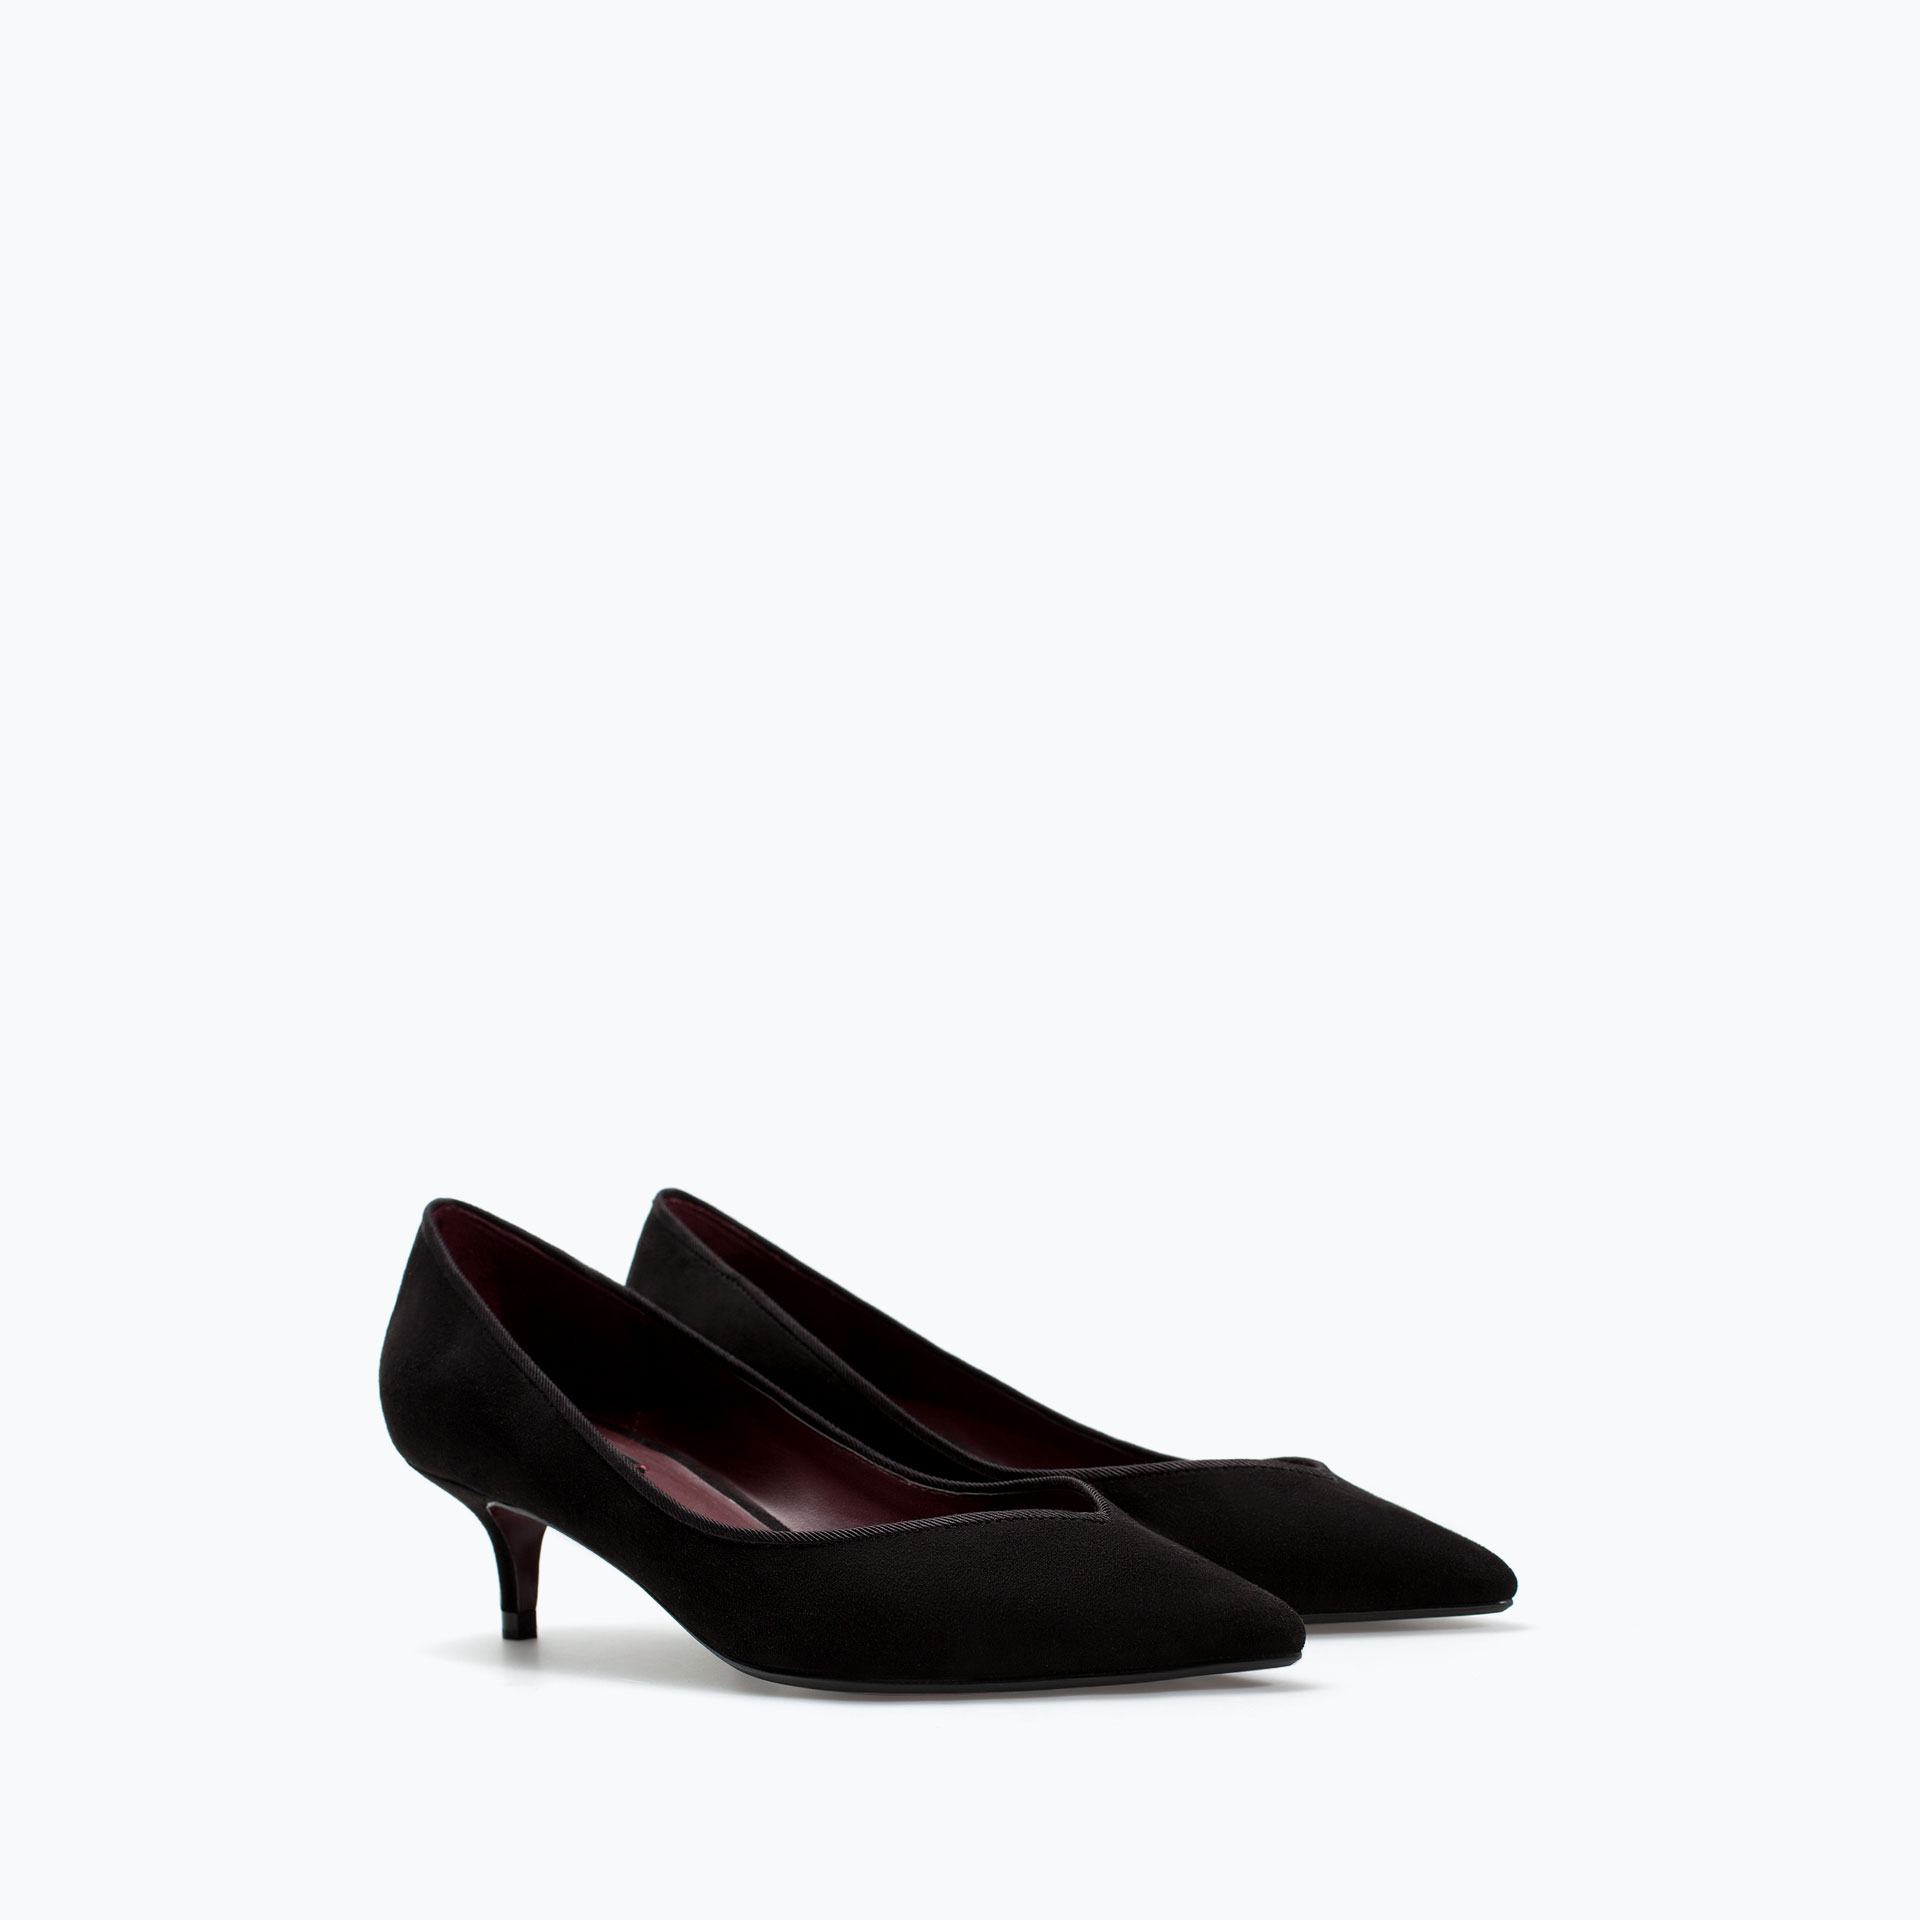 Zara Kitten Heel Court Shoe in Black | Lyst